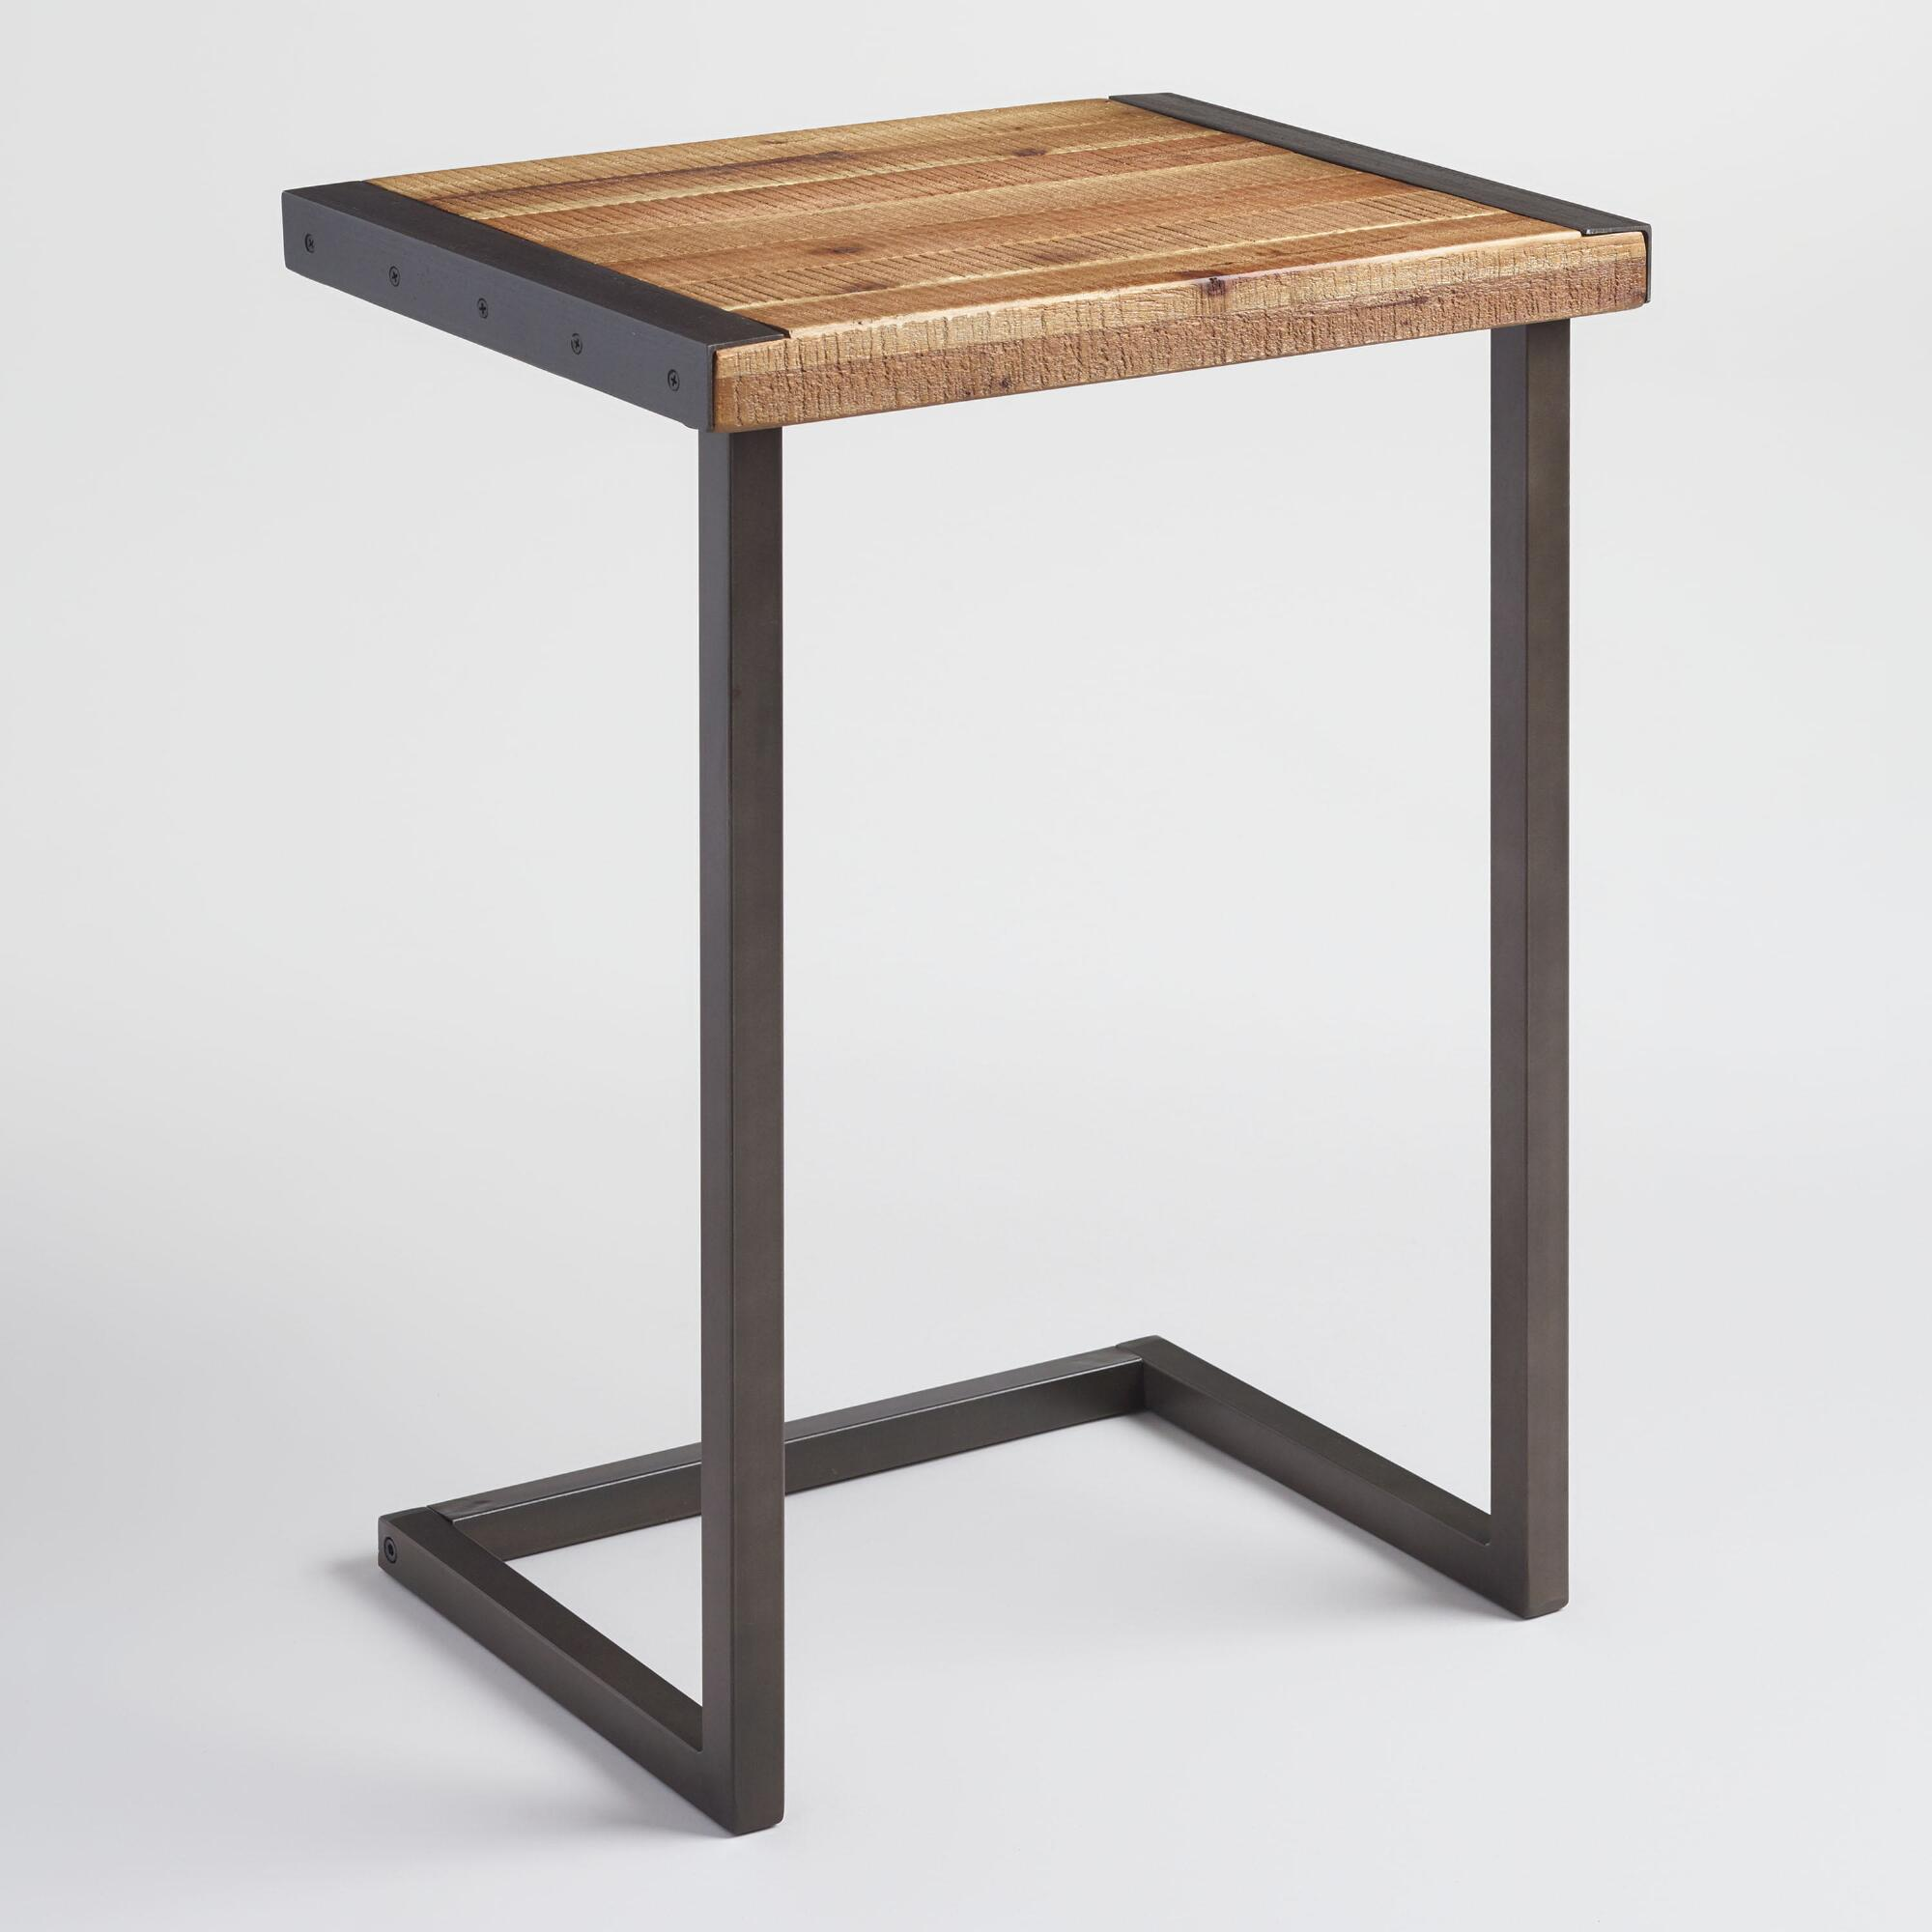 industrial furniture rustic chic world market iipsrv fcgi tall square accent table metal edge laptop desk pier imports patio glass pendant shades wooden chairs ikea kids wall